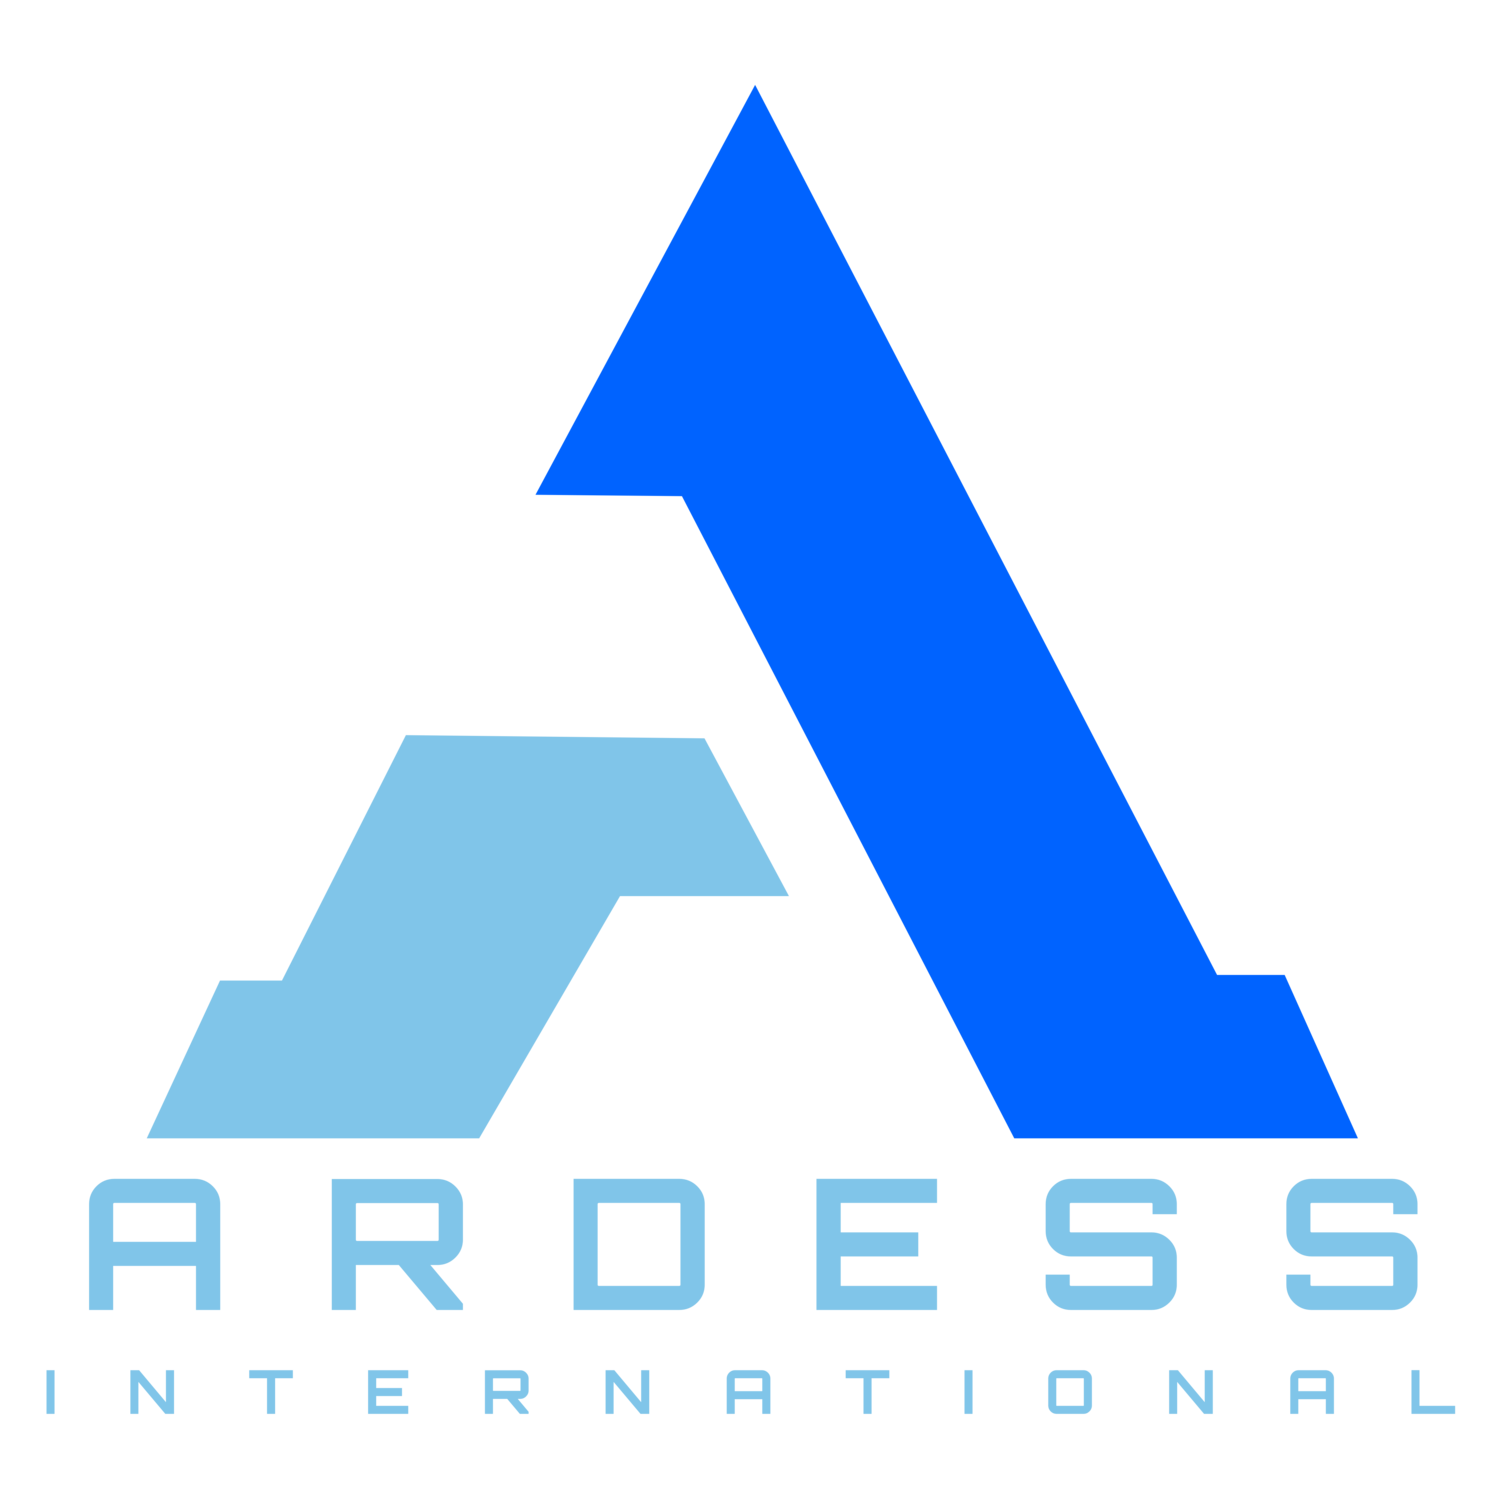 Ardess International